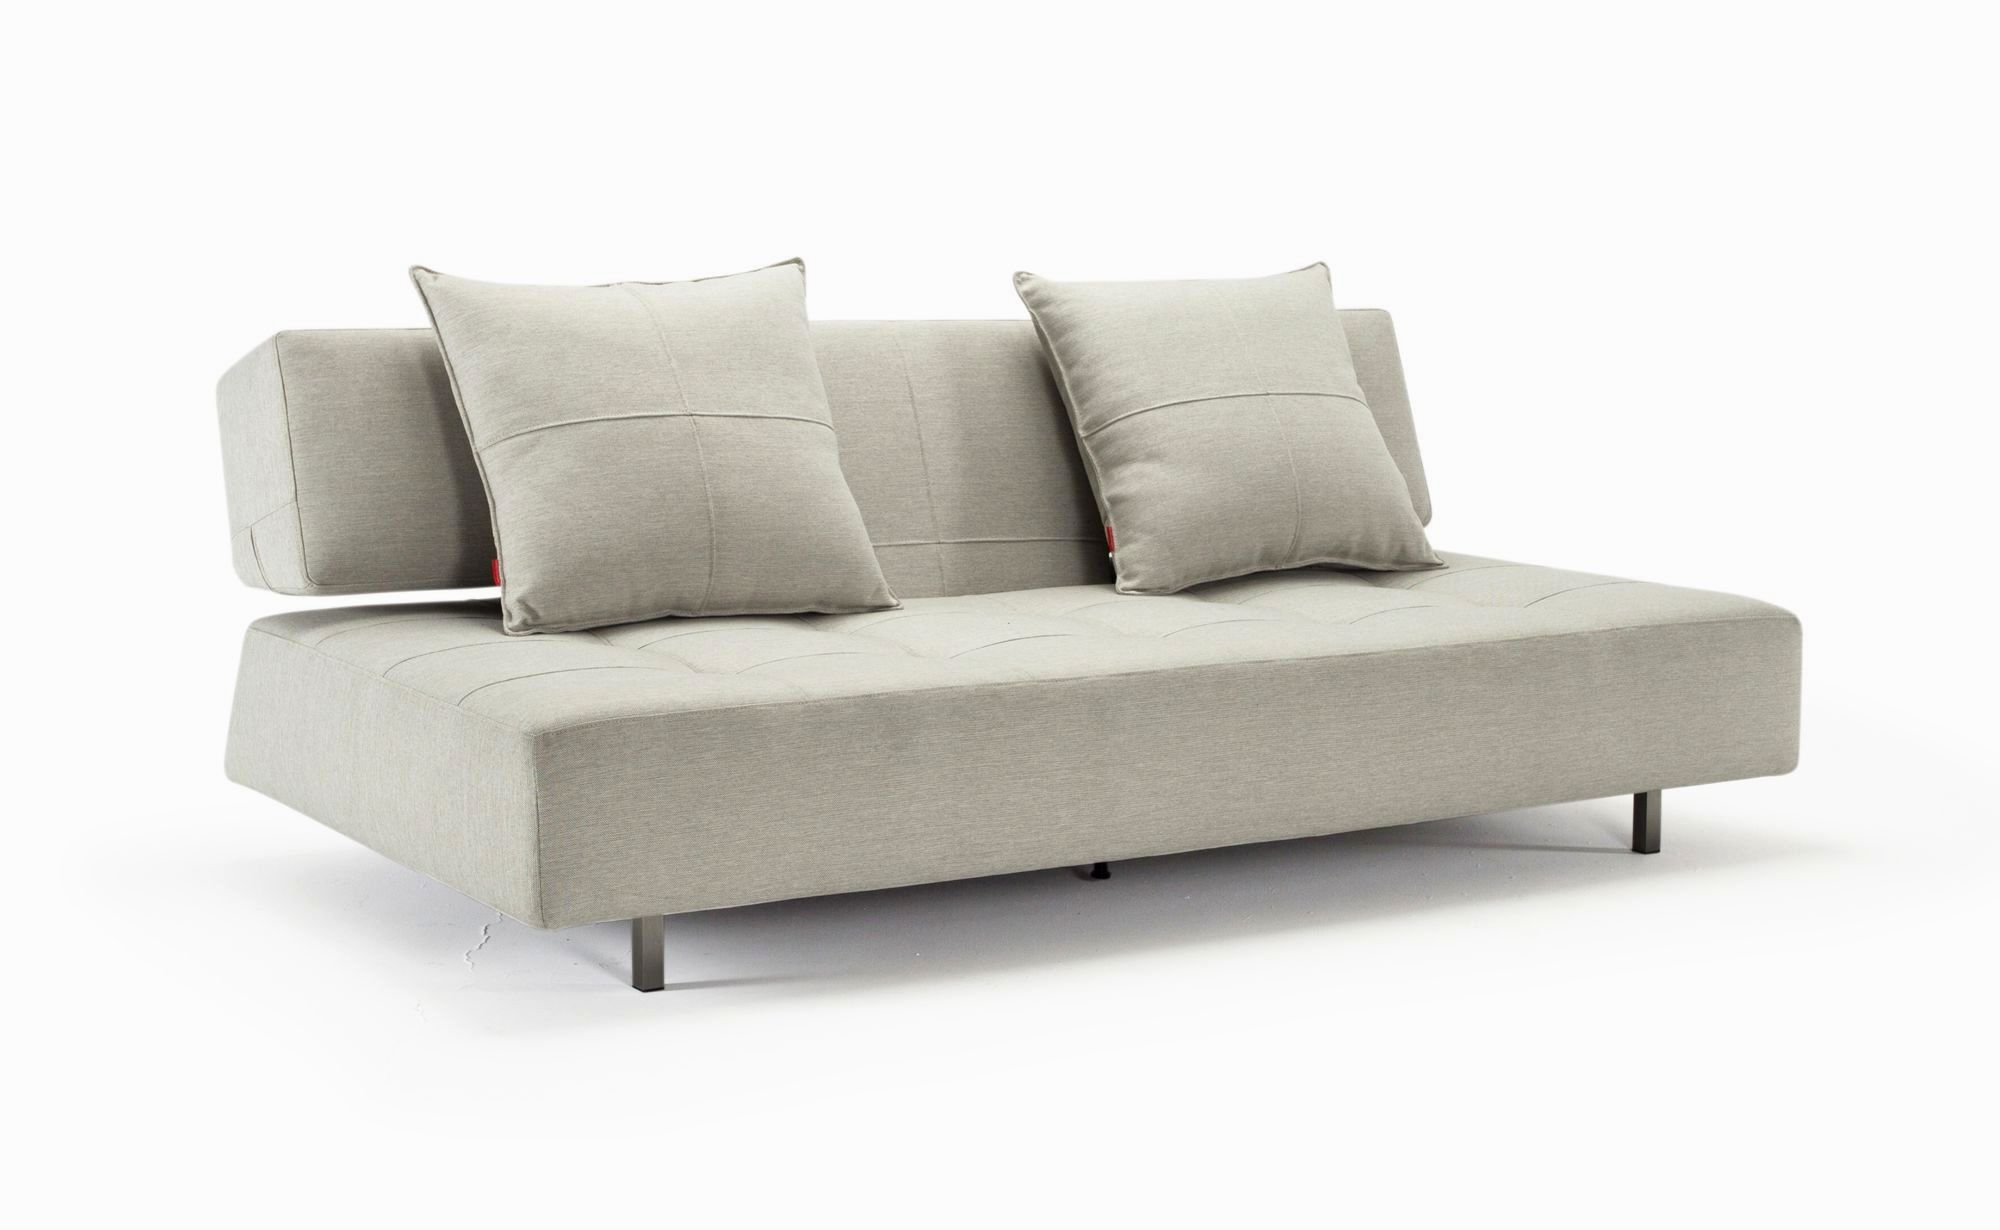 fresh low back sofa inspiration-Amazing Low Back sofa Ideas